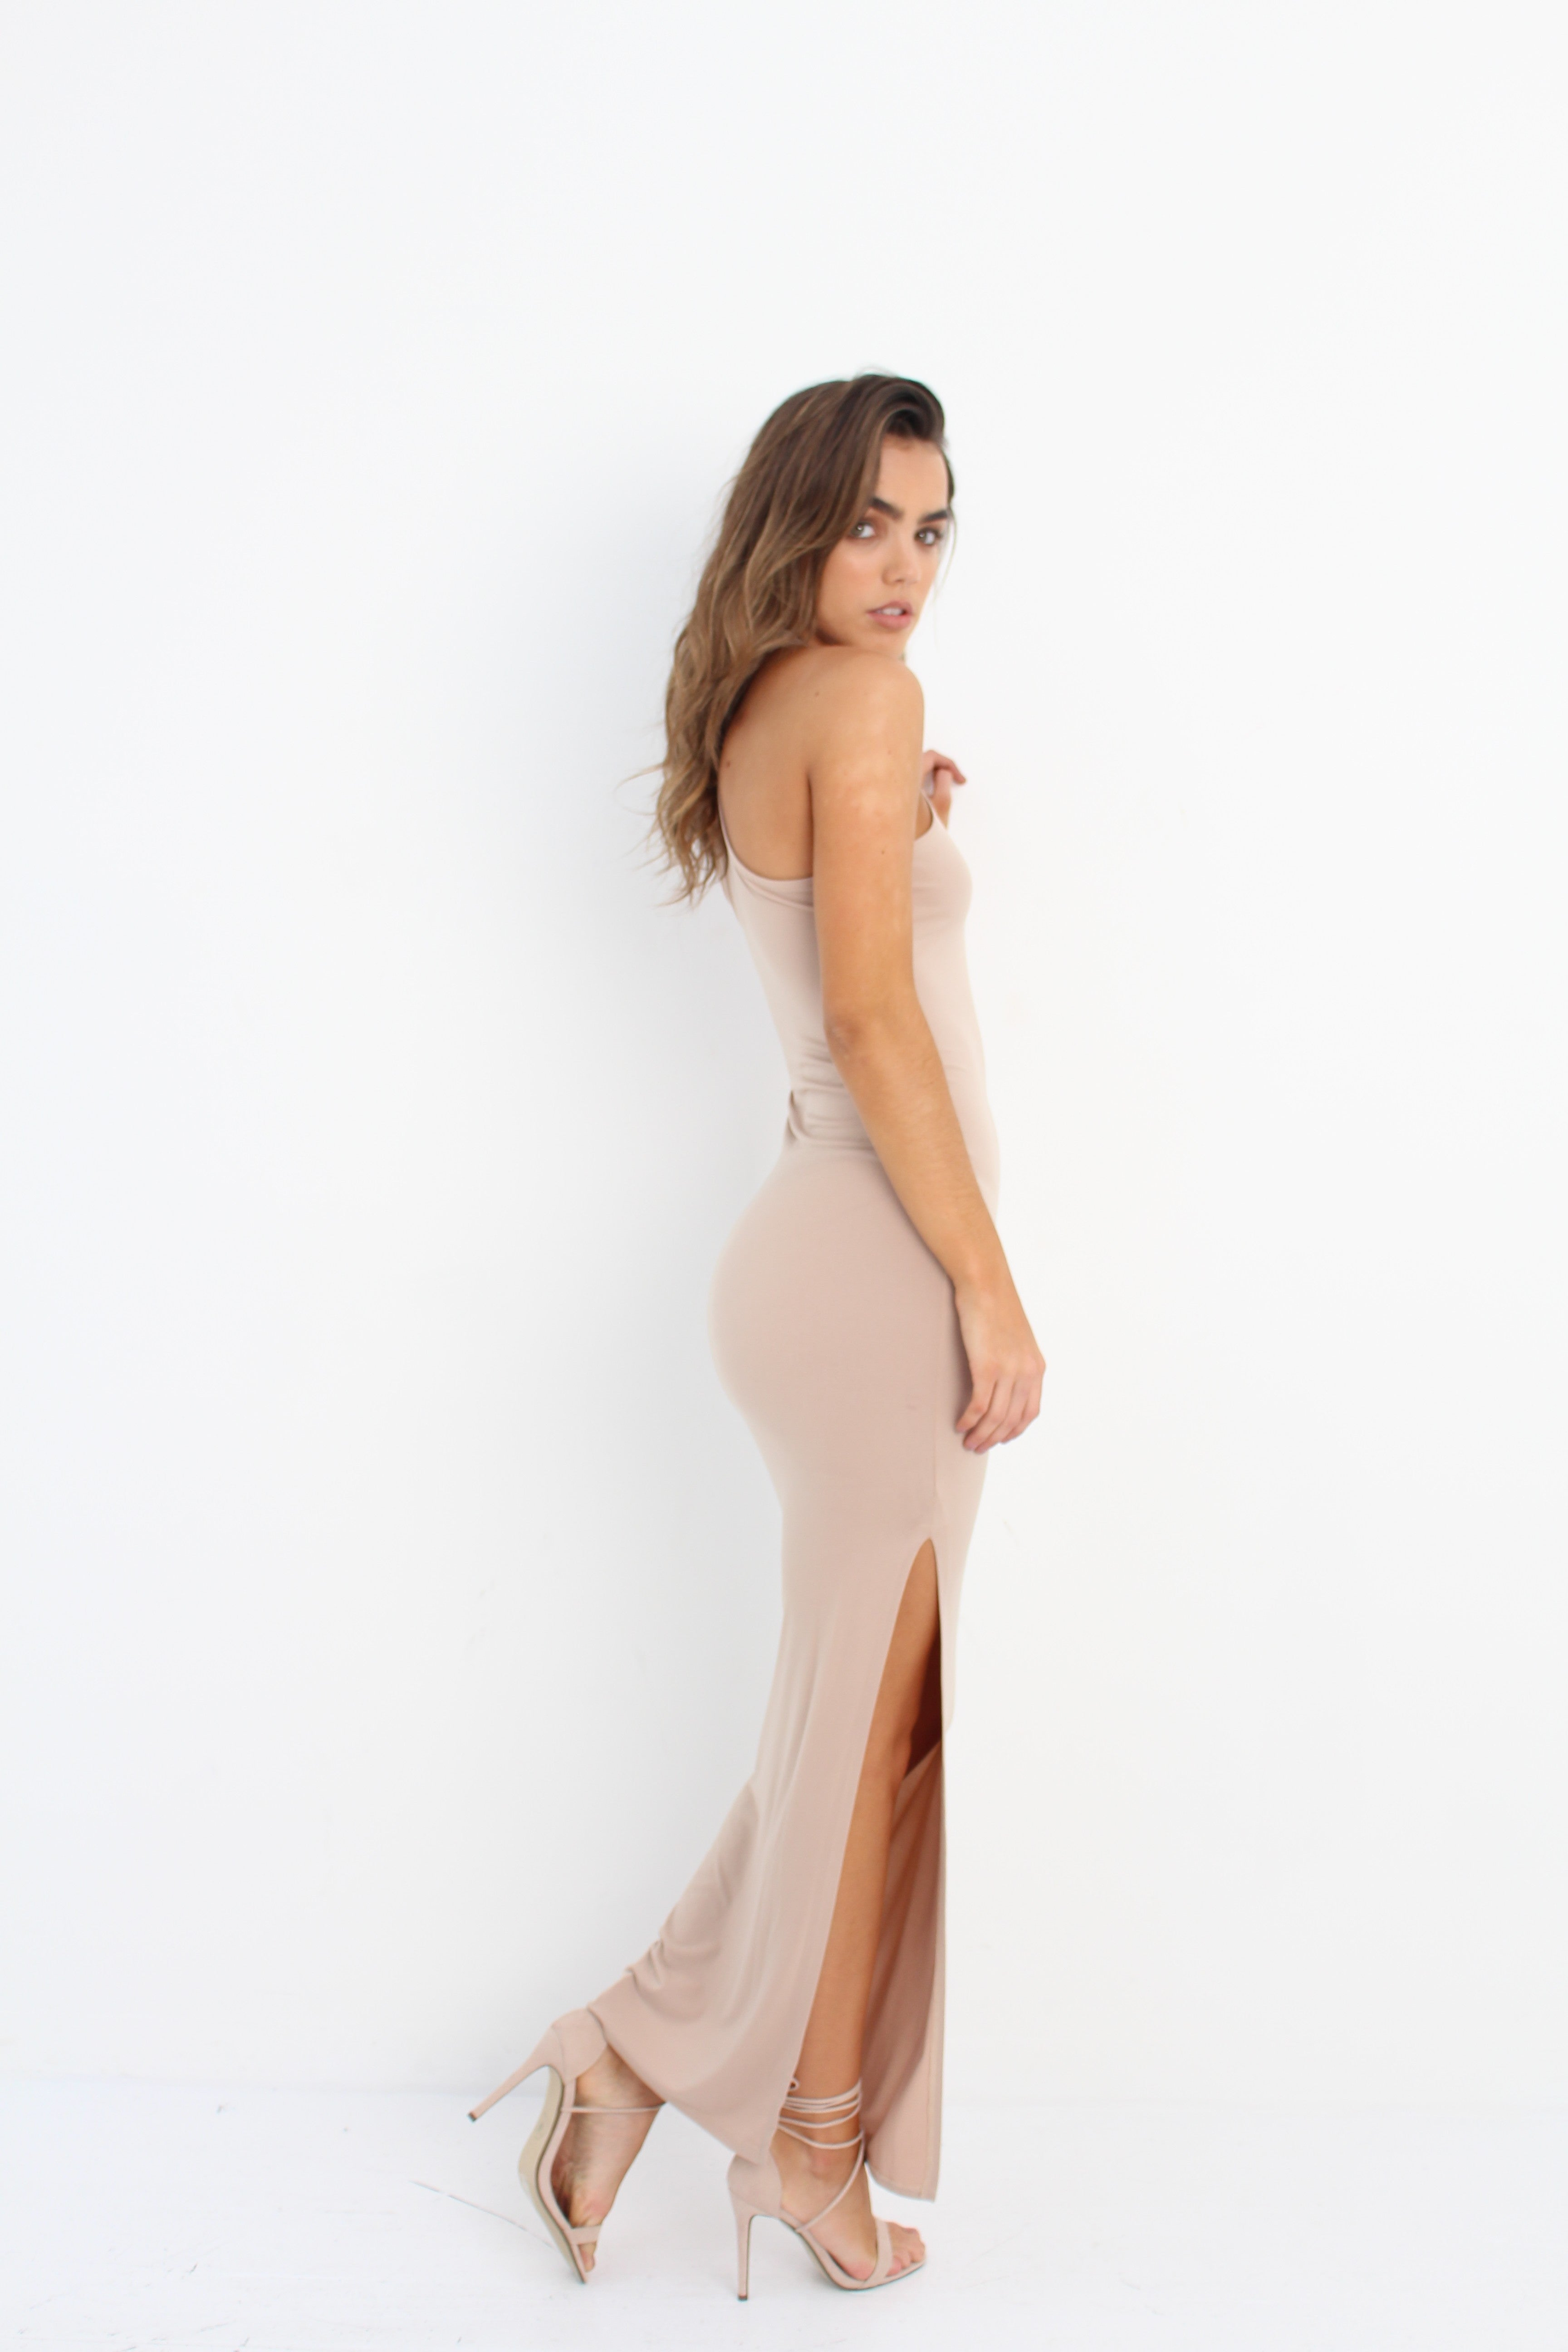 Dawnbreaker Dress Nude by Wired Angel Ltd on OOSTOR.com